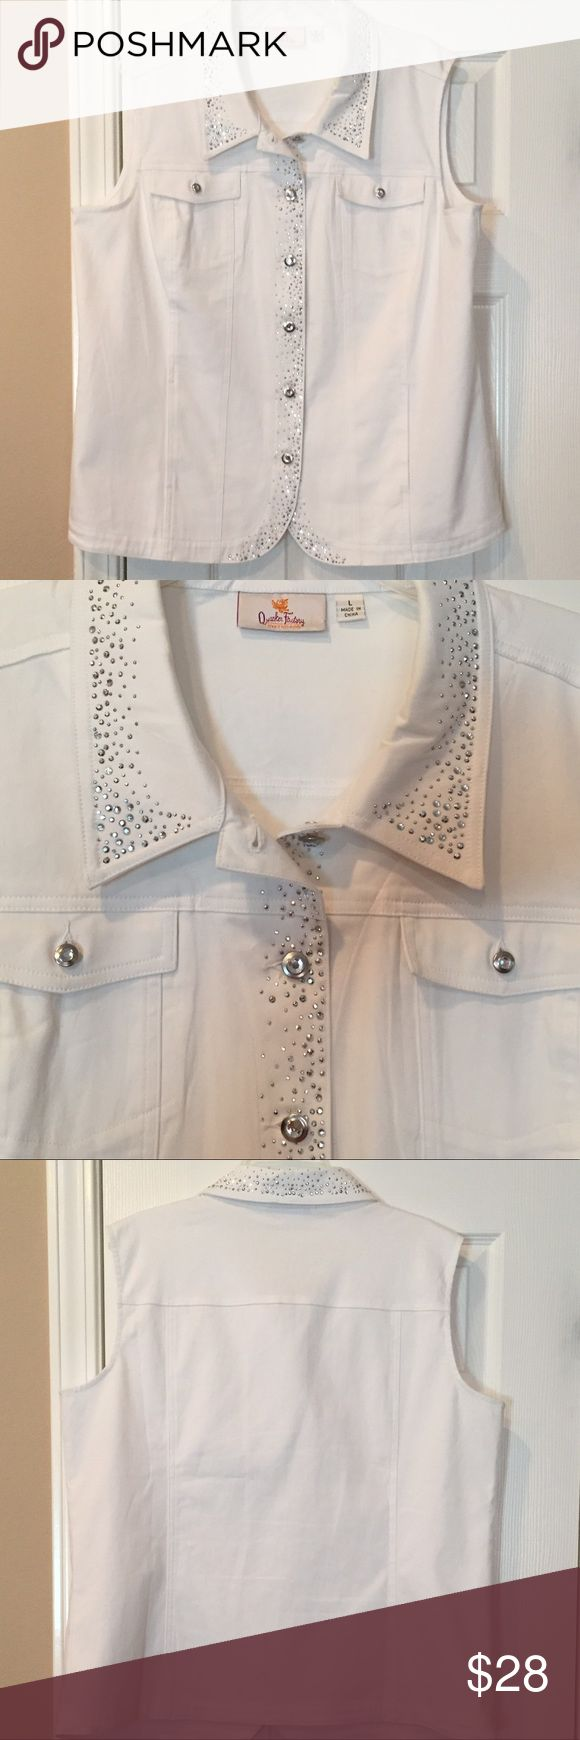 DreamJeannes White Denim Vest Classic jean vest with a twist! Rhinestone embellishments- semi fitted; follows the lines of the body with added wearing ease. Collar rhinestone button front closure, seaming rhinestone detail, two functional chest pockets with rhinestone button closure. Made of 97% Cotton 3% Spandex. Excellent condition! (No rips, stains or tears). Quacker Factory Tops Button Down Shirts